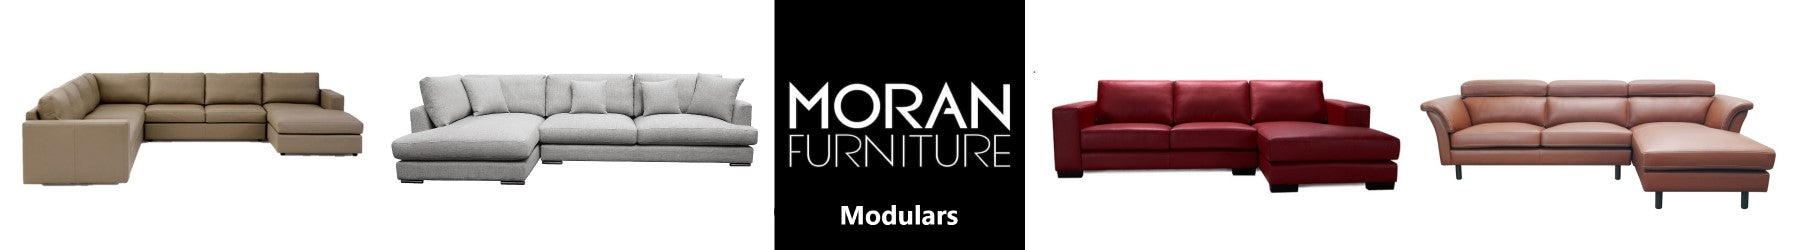 Moran Furniture Modular Sofas and Lounges